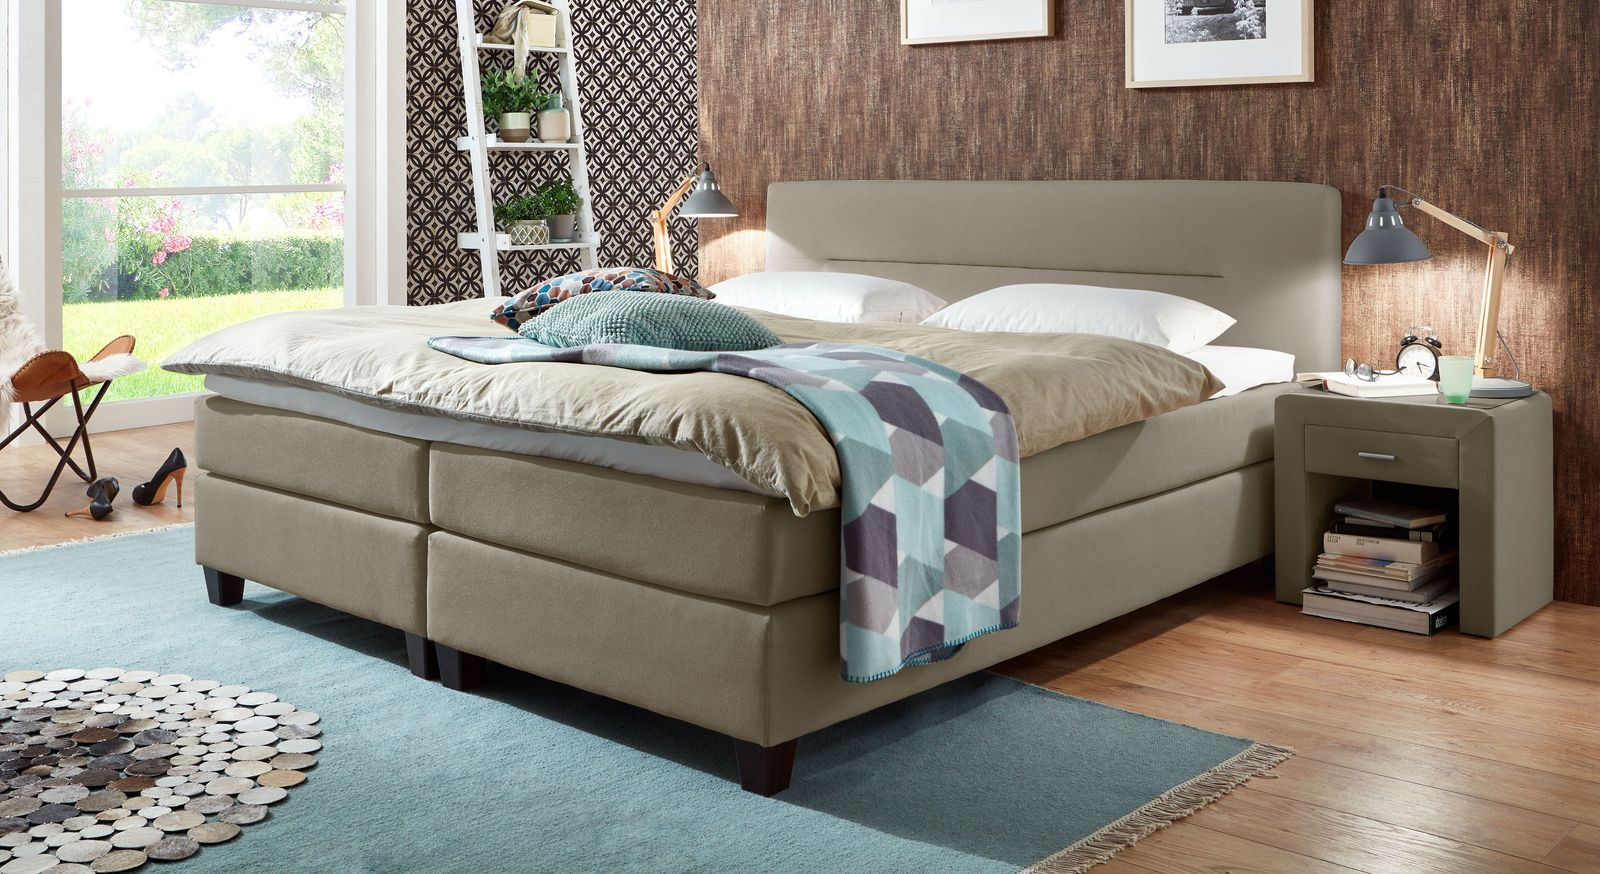 53 cm hohes Boxspringbett Clarksville aus Webstoff in Taupe